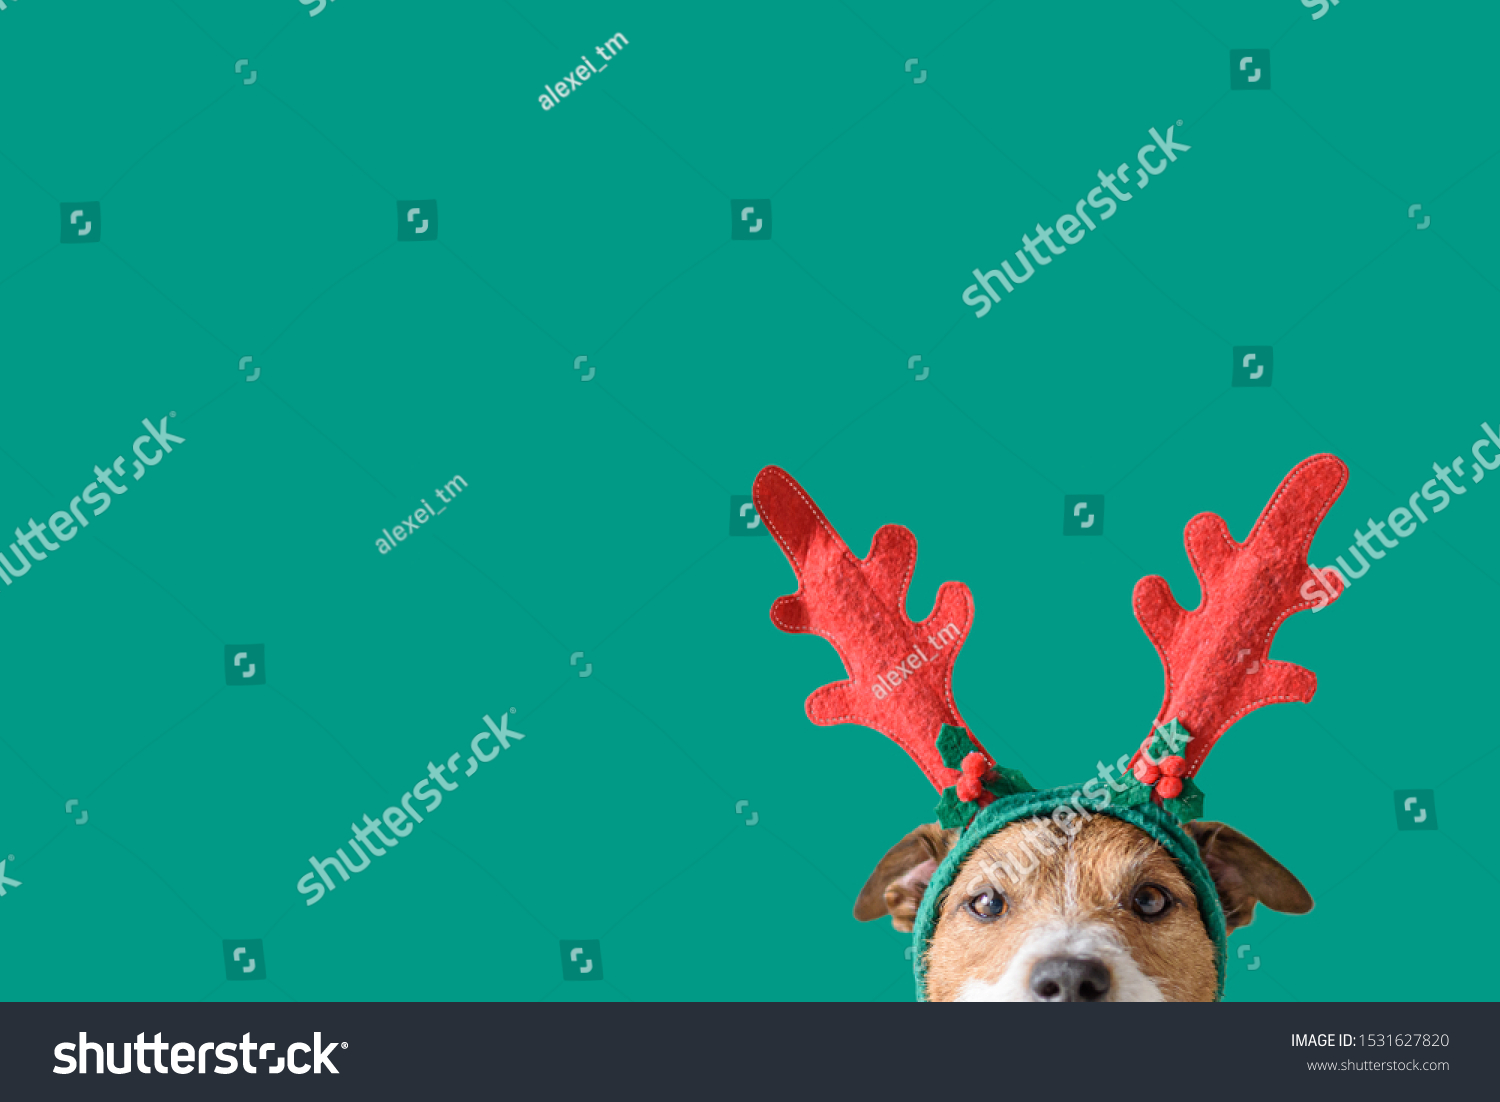 New year and Christmas concept with Dog wearing reindeer antlers headband against solid green background #1531627820